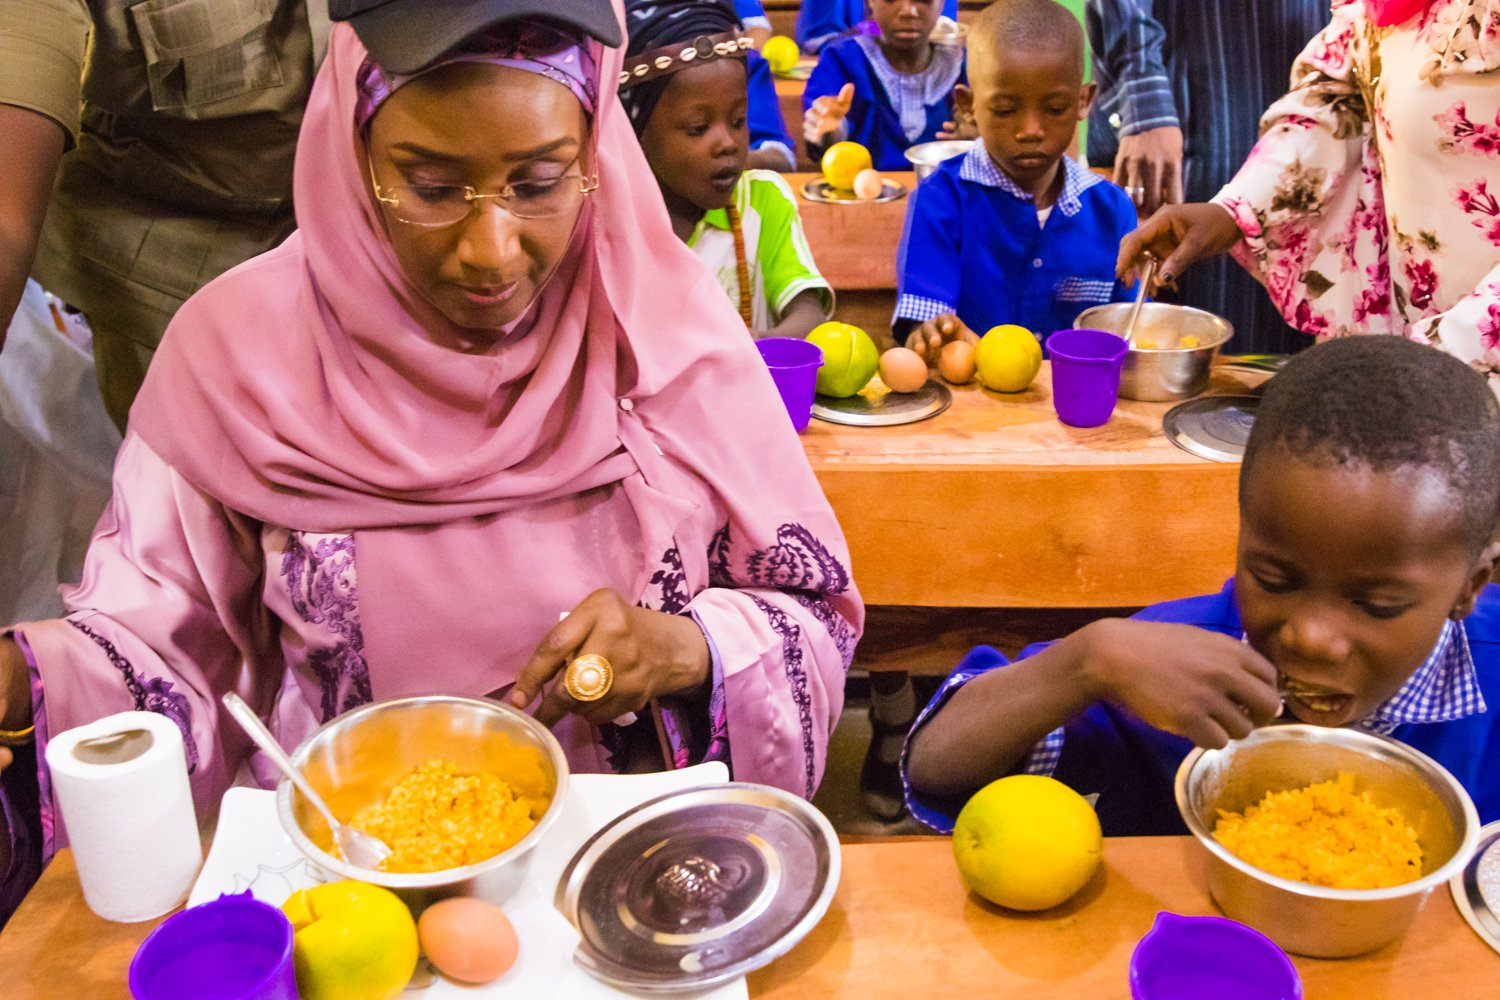 FG Spends ₦679M To Feed School Children Daily